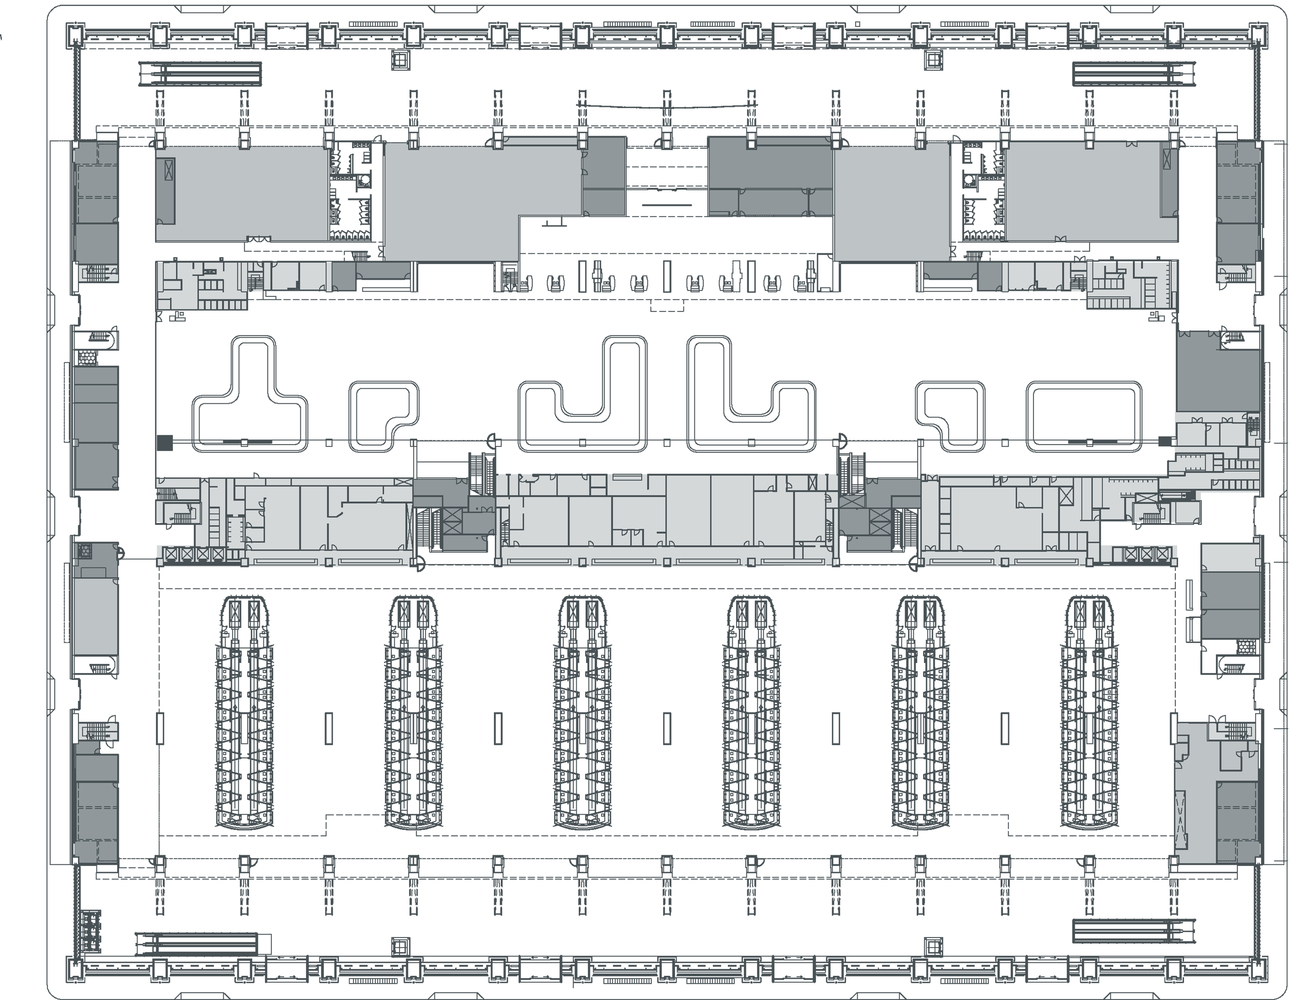 Airport Floor Plan United Airlines And Travelling